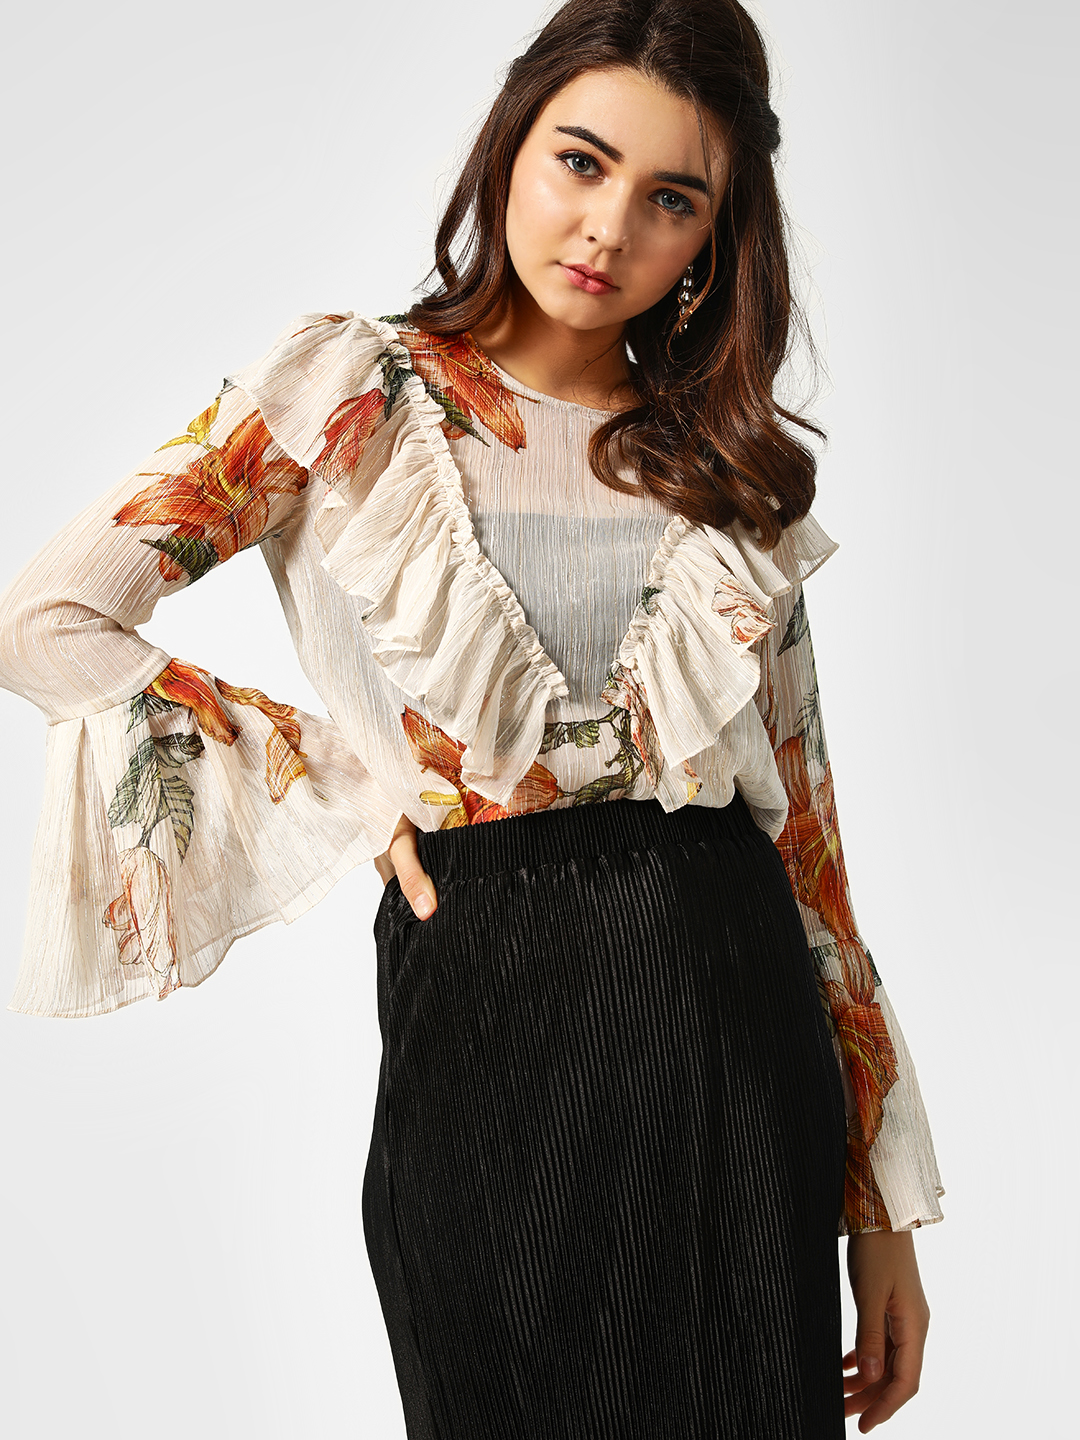 Cover Story Print Floral Print Ruffle Top 1